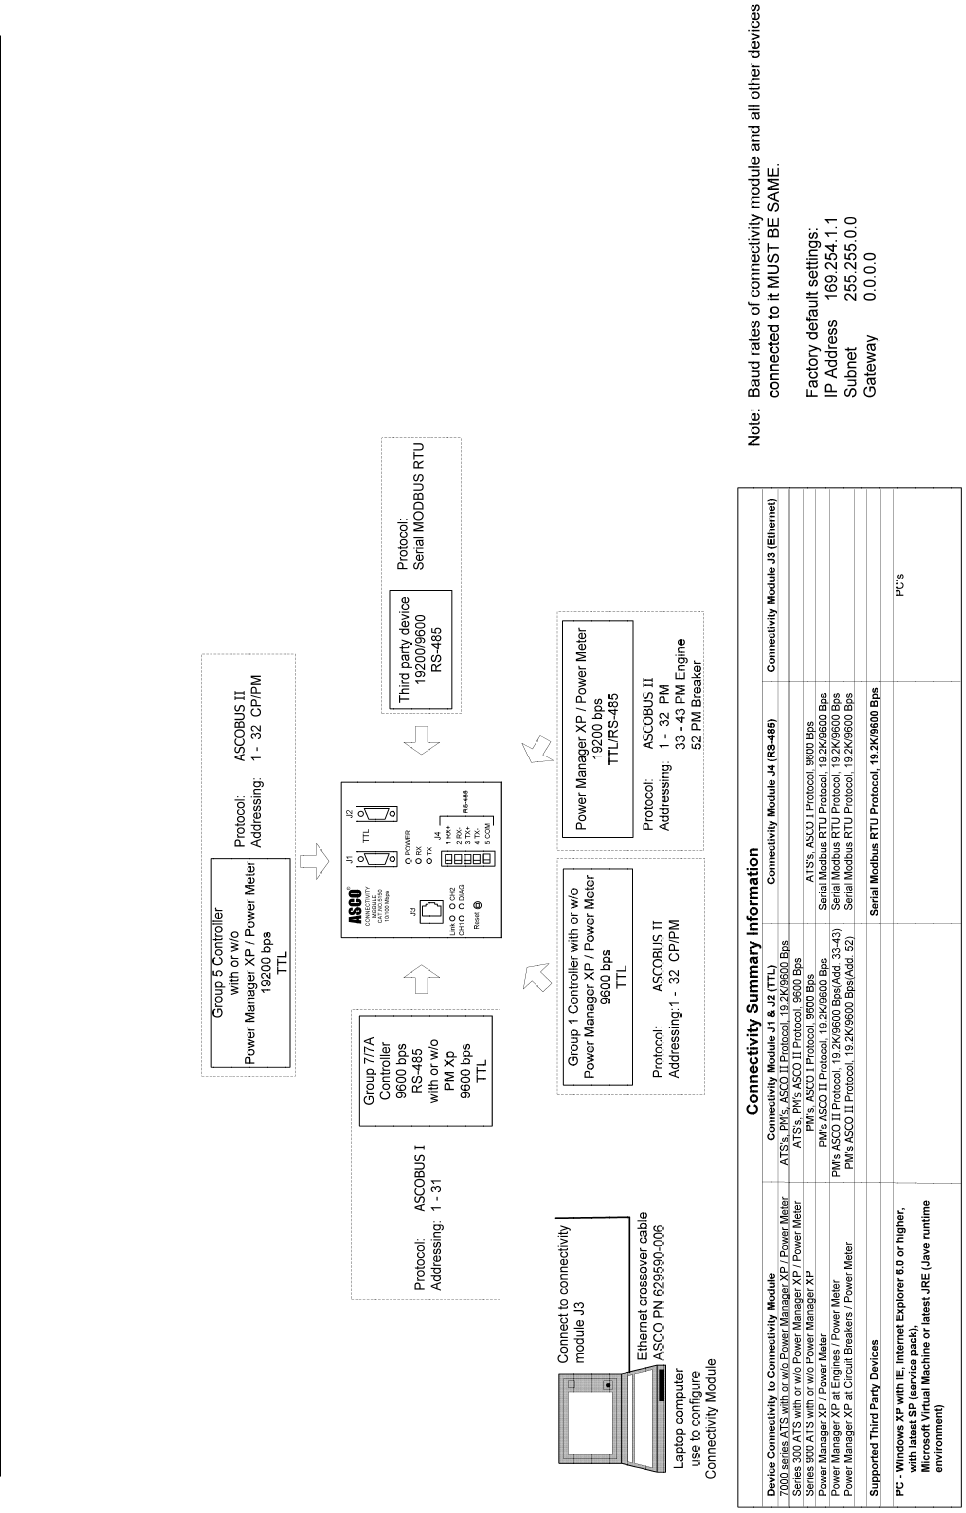 300 Kva Ats Panel Wiring Diagram Circuit Switch For Emerson 5150 Users Manual Installation Asco Catalog Connectivity On